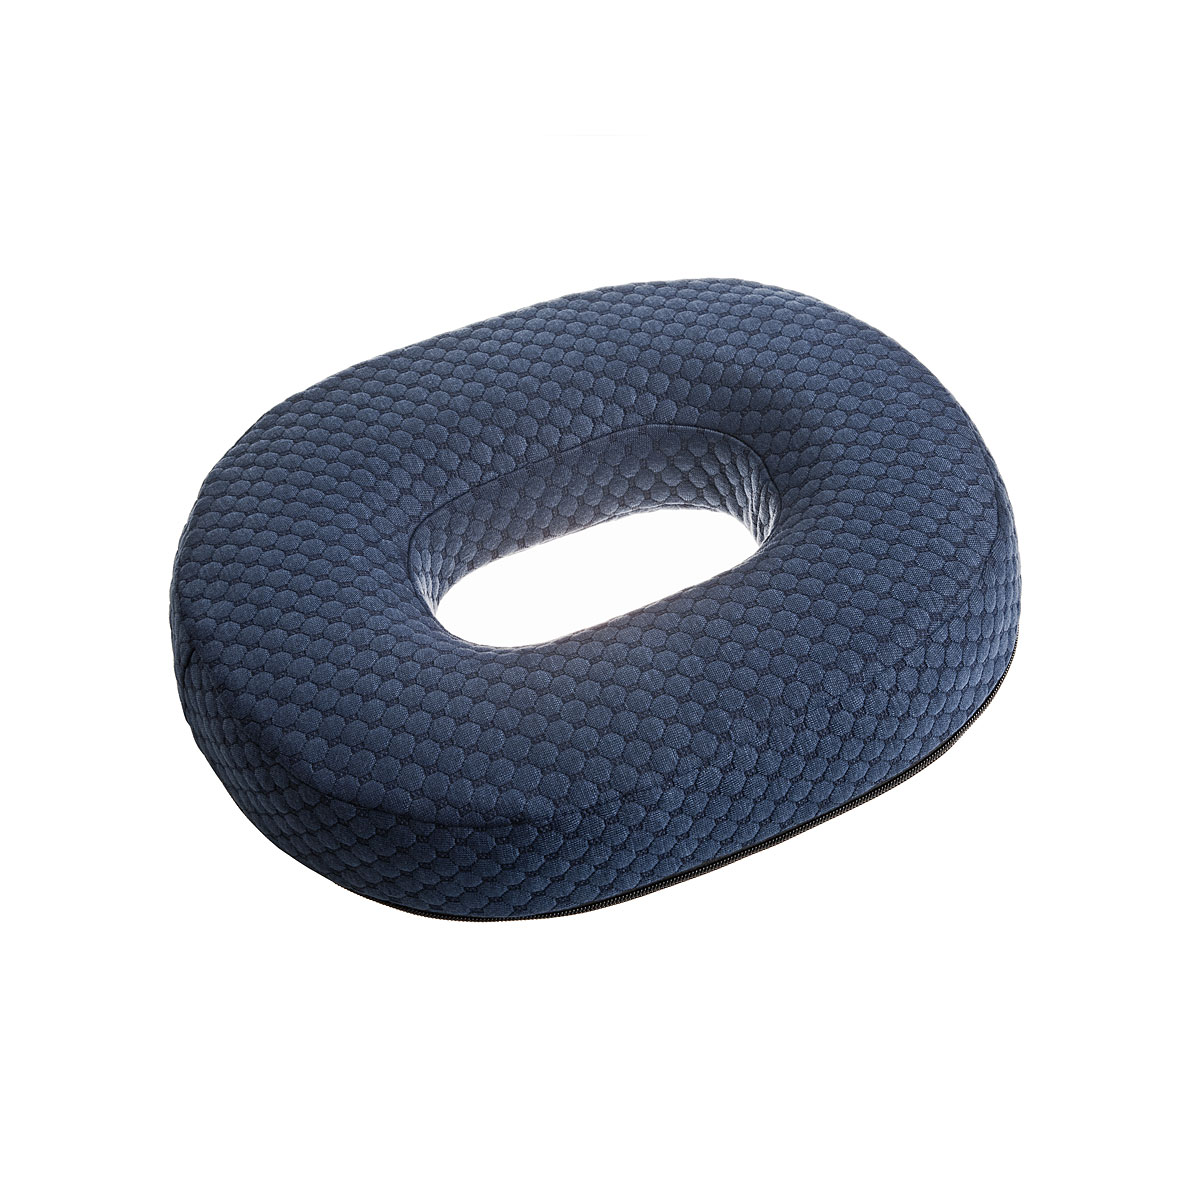 products coccyx wheelchair cushions amp foam cushion memory essential pillow seat supply medical